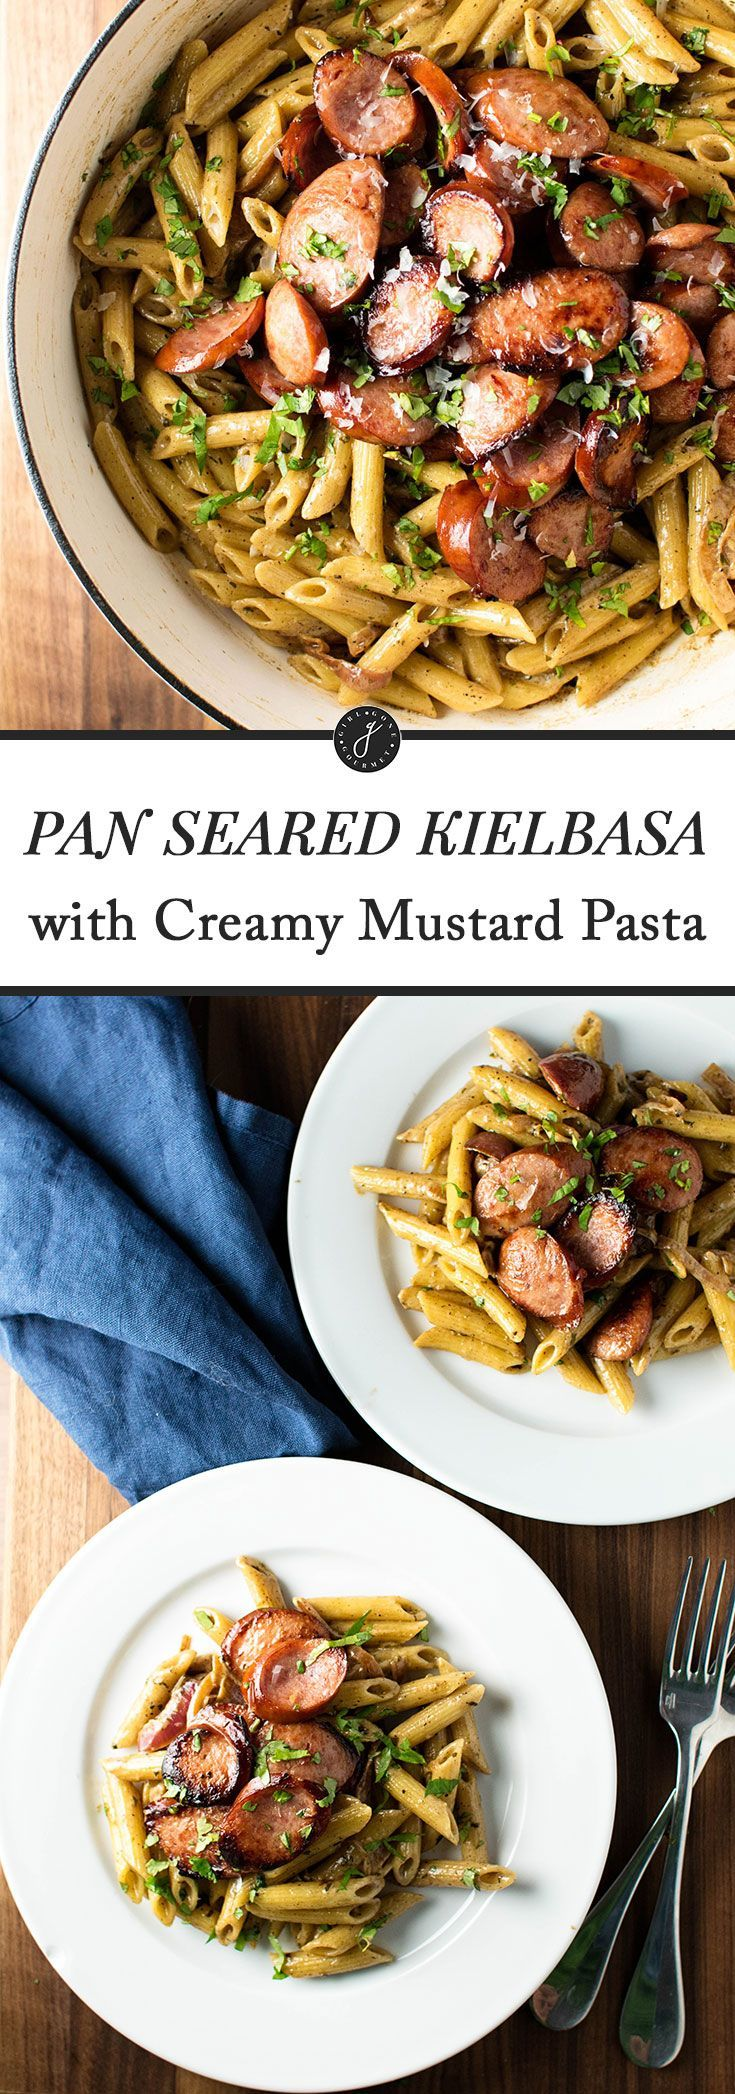 Pan seared kielbasa with a creamy mustard pasta made with white wine, butter, cream, and Parmesan cheese   girlgonegourmet.com via @april7116